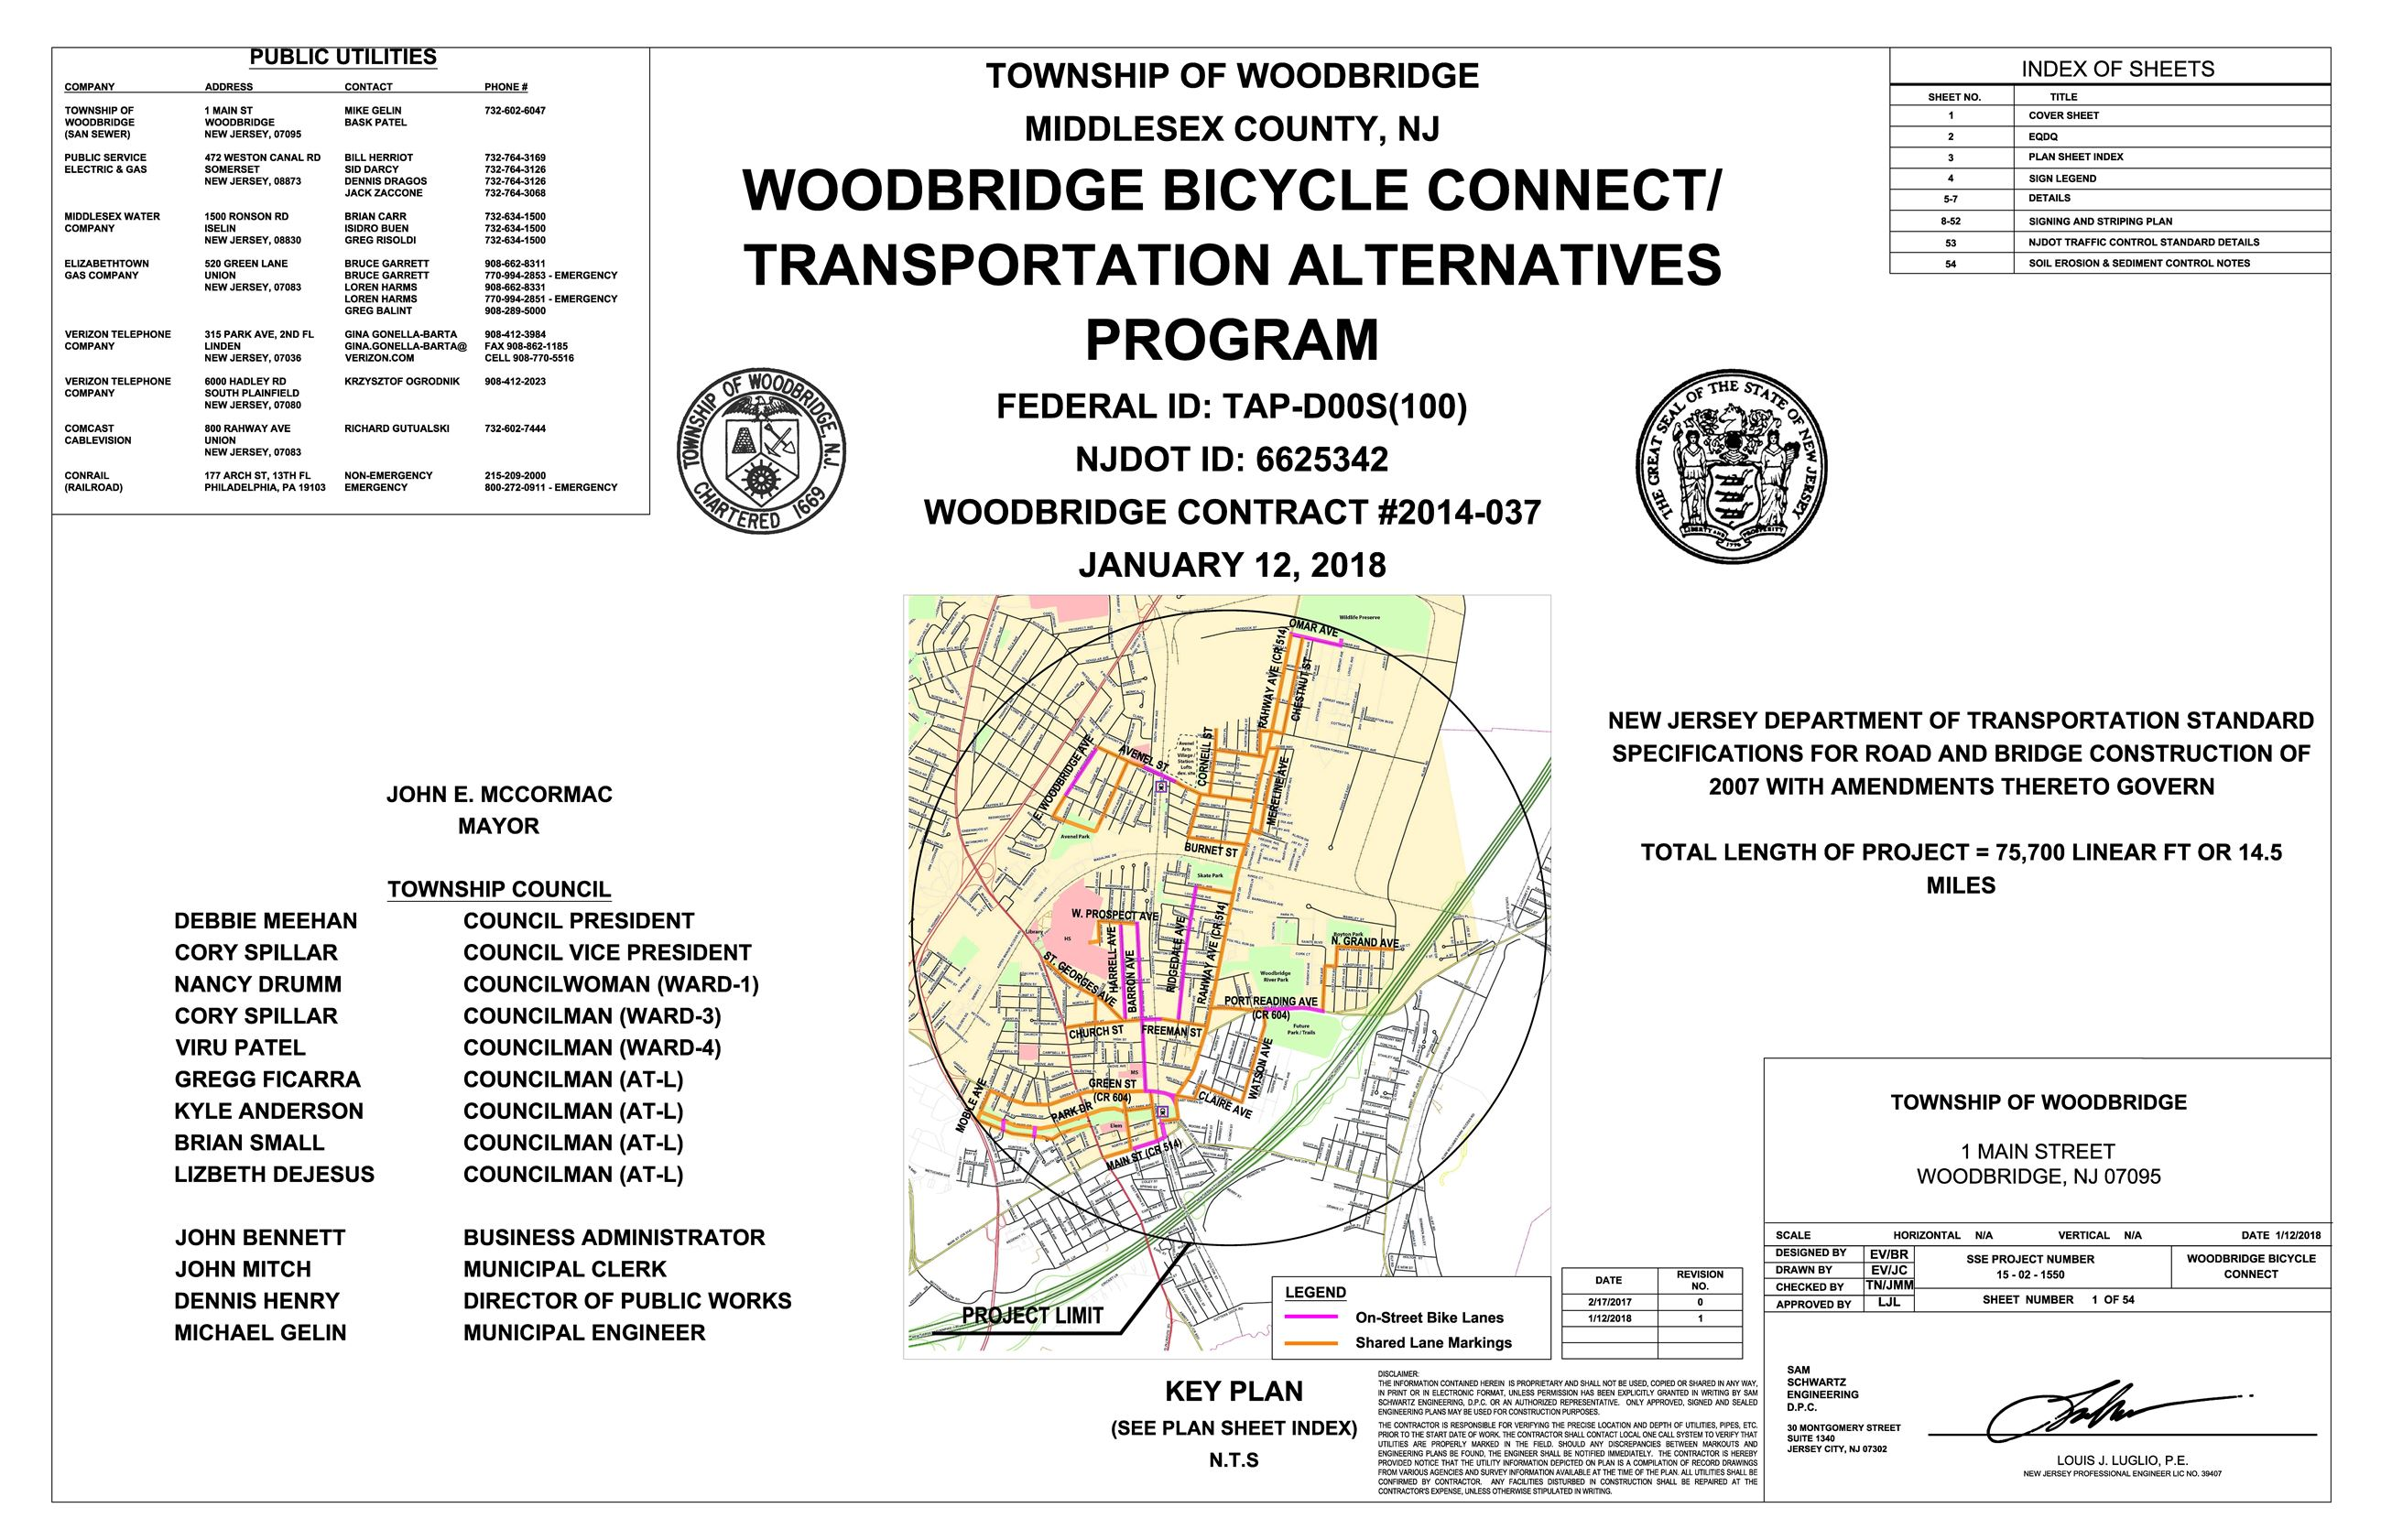 Woodbridge Bicycle Connect